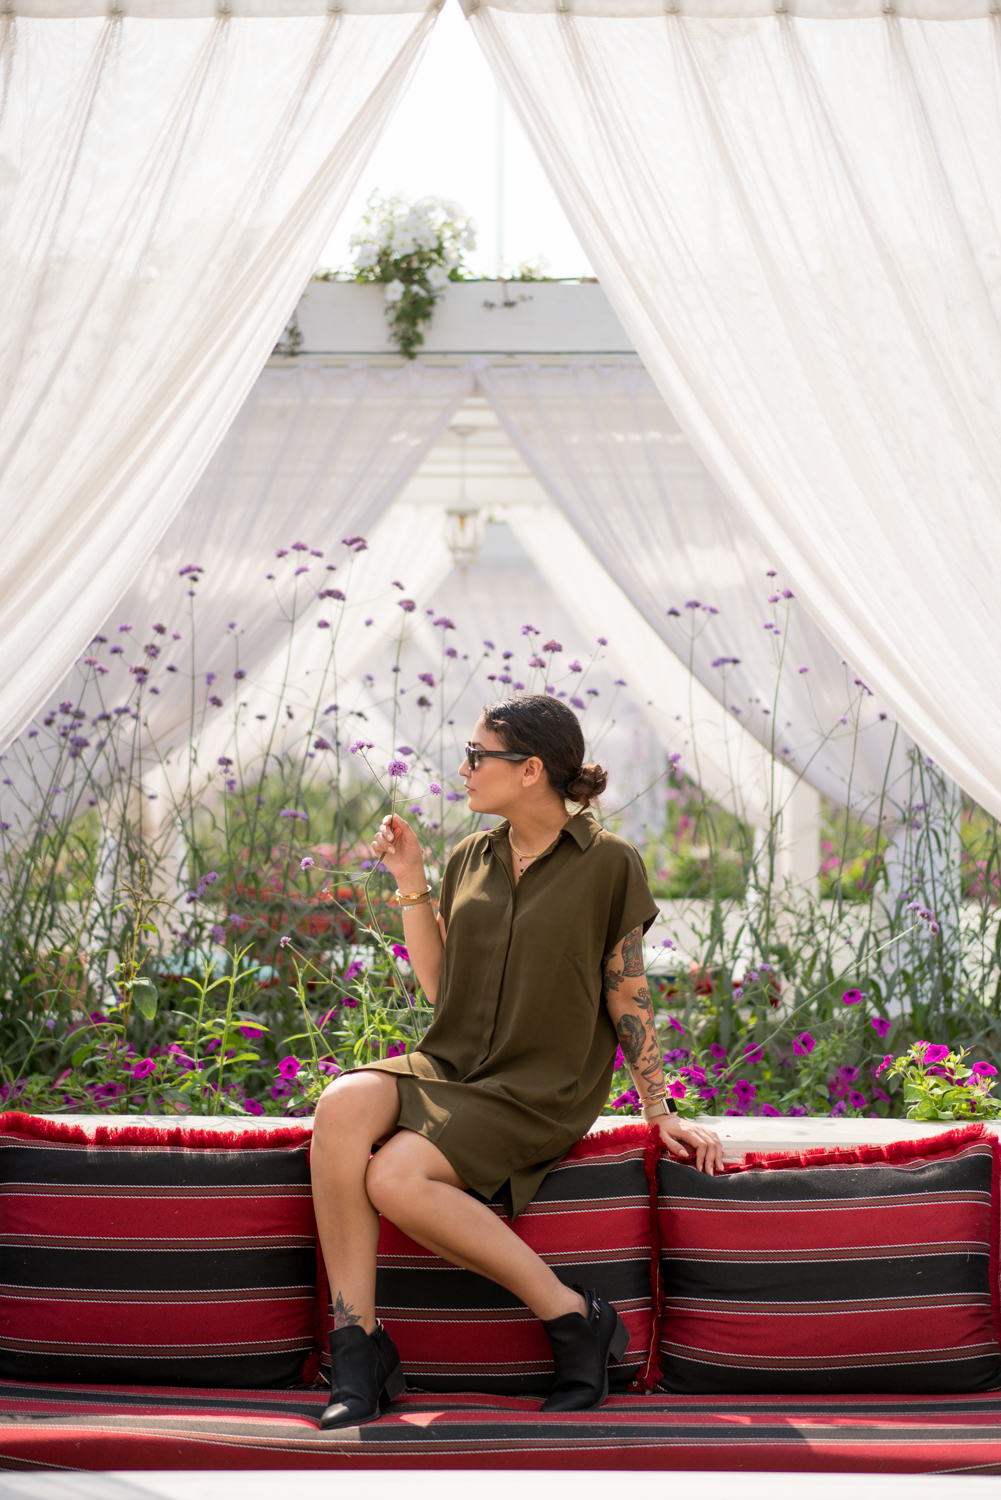 Amanda in a cabana with the flowers.  Sony A7RII, Zeiss 55mm f/1.8 (iso100, f/1.8, 1/3200s)